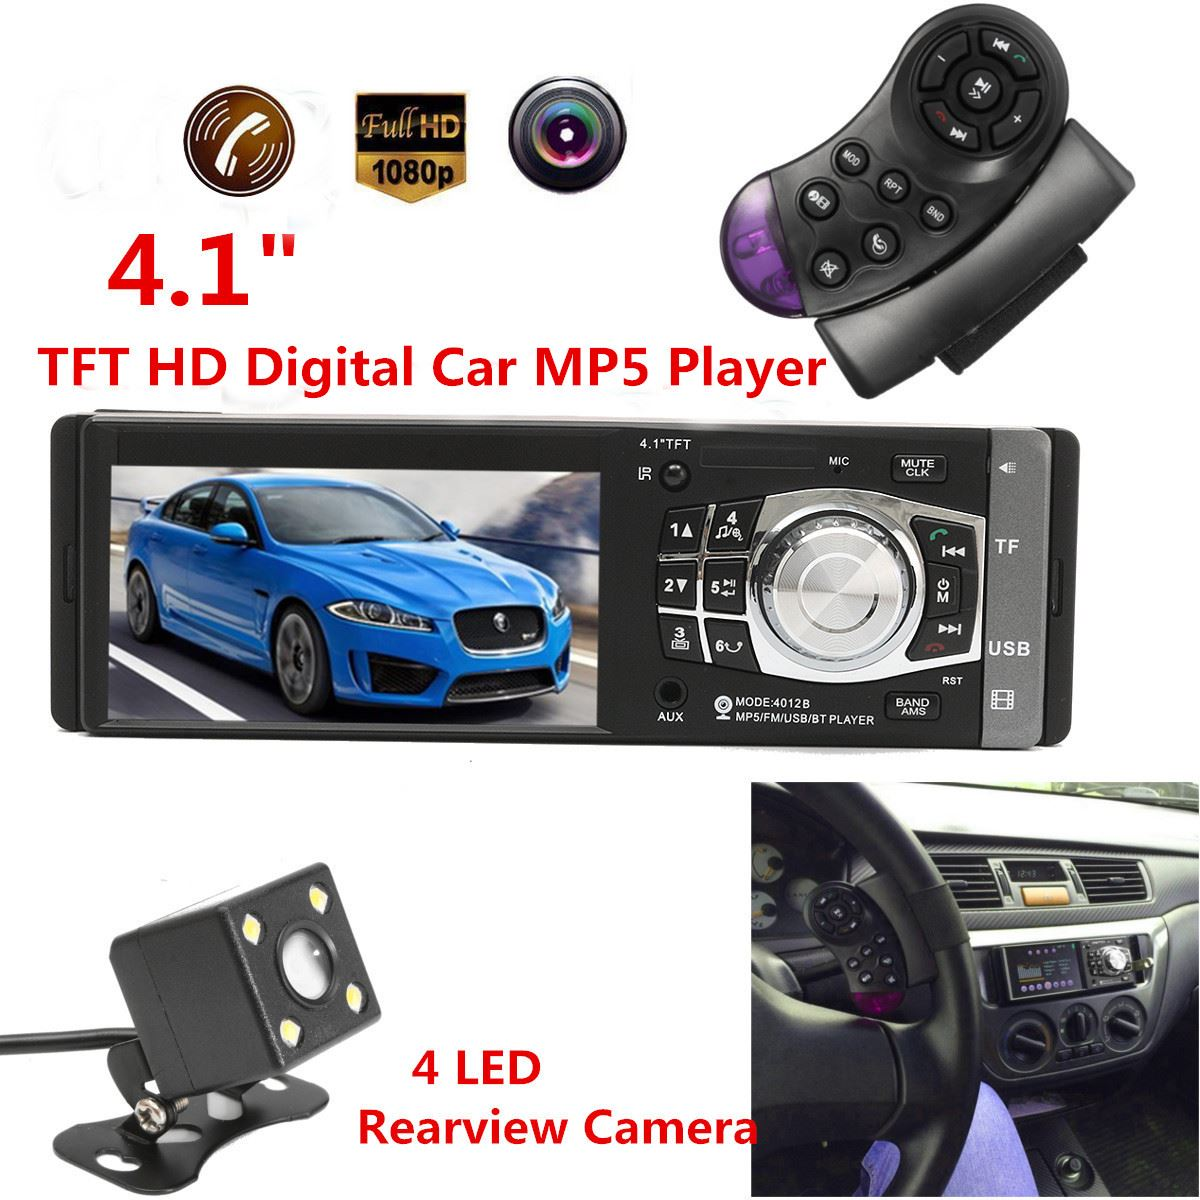 4.1 Inch Car Mp5 Player 1 Din HD Car Radio Audio Video Player With Rearview Camera Bluetooth Remote Control Stereo FM USB SD 968 diy 1 1 lcd multi media video music player module with remote controller usb sd fm